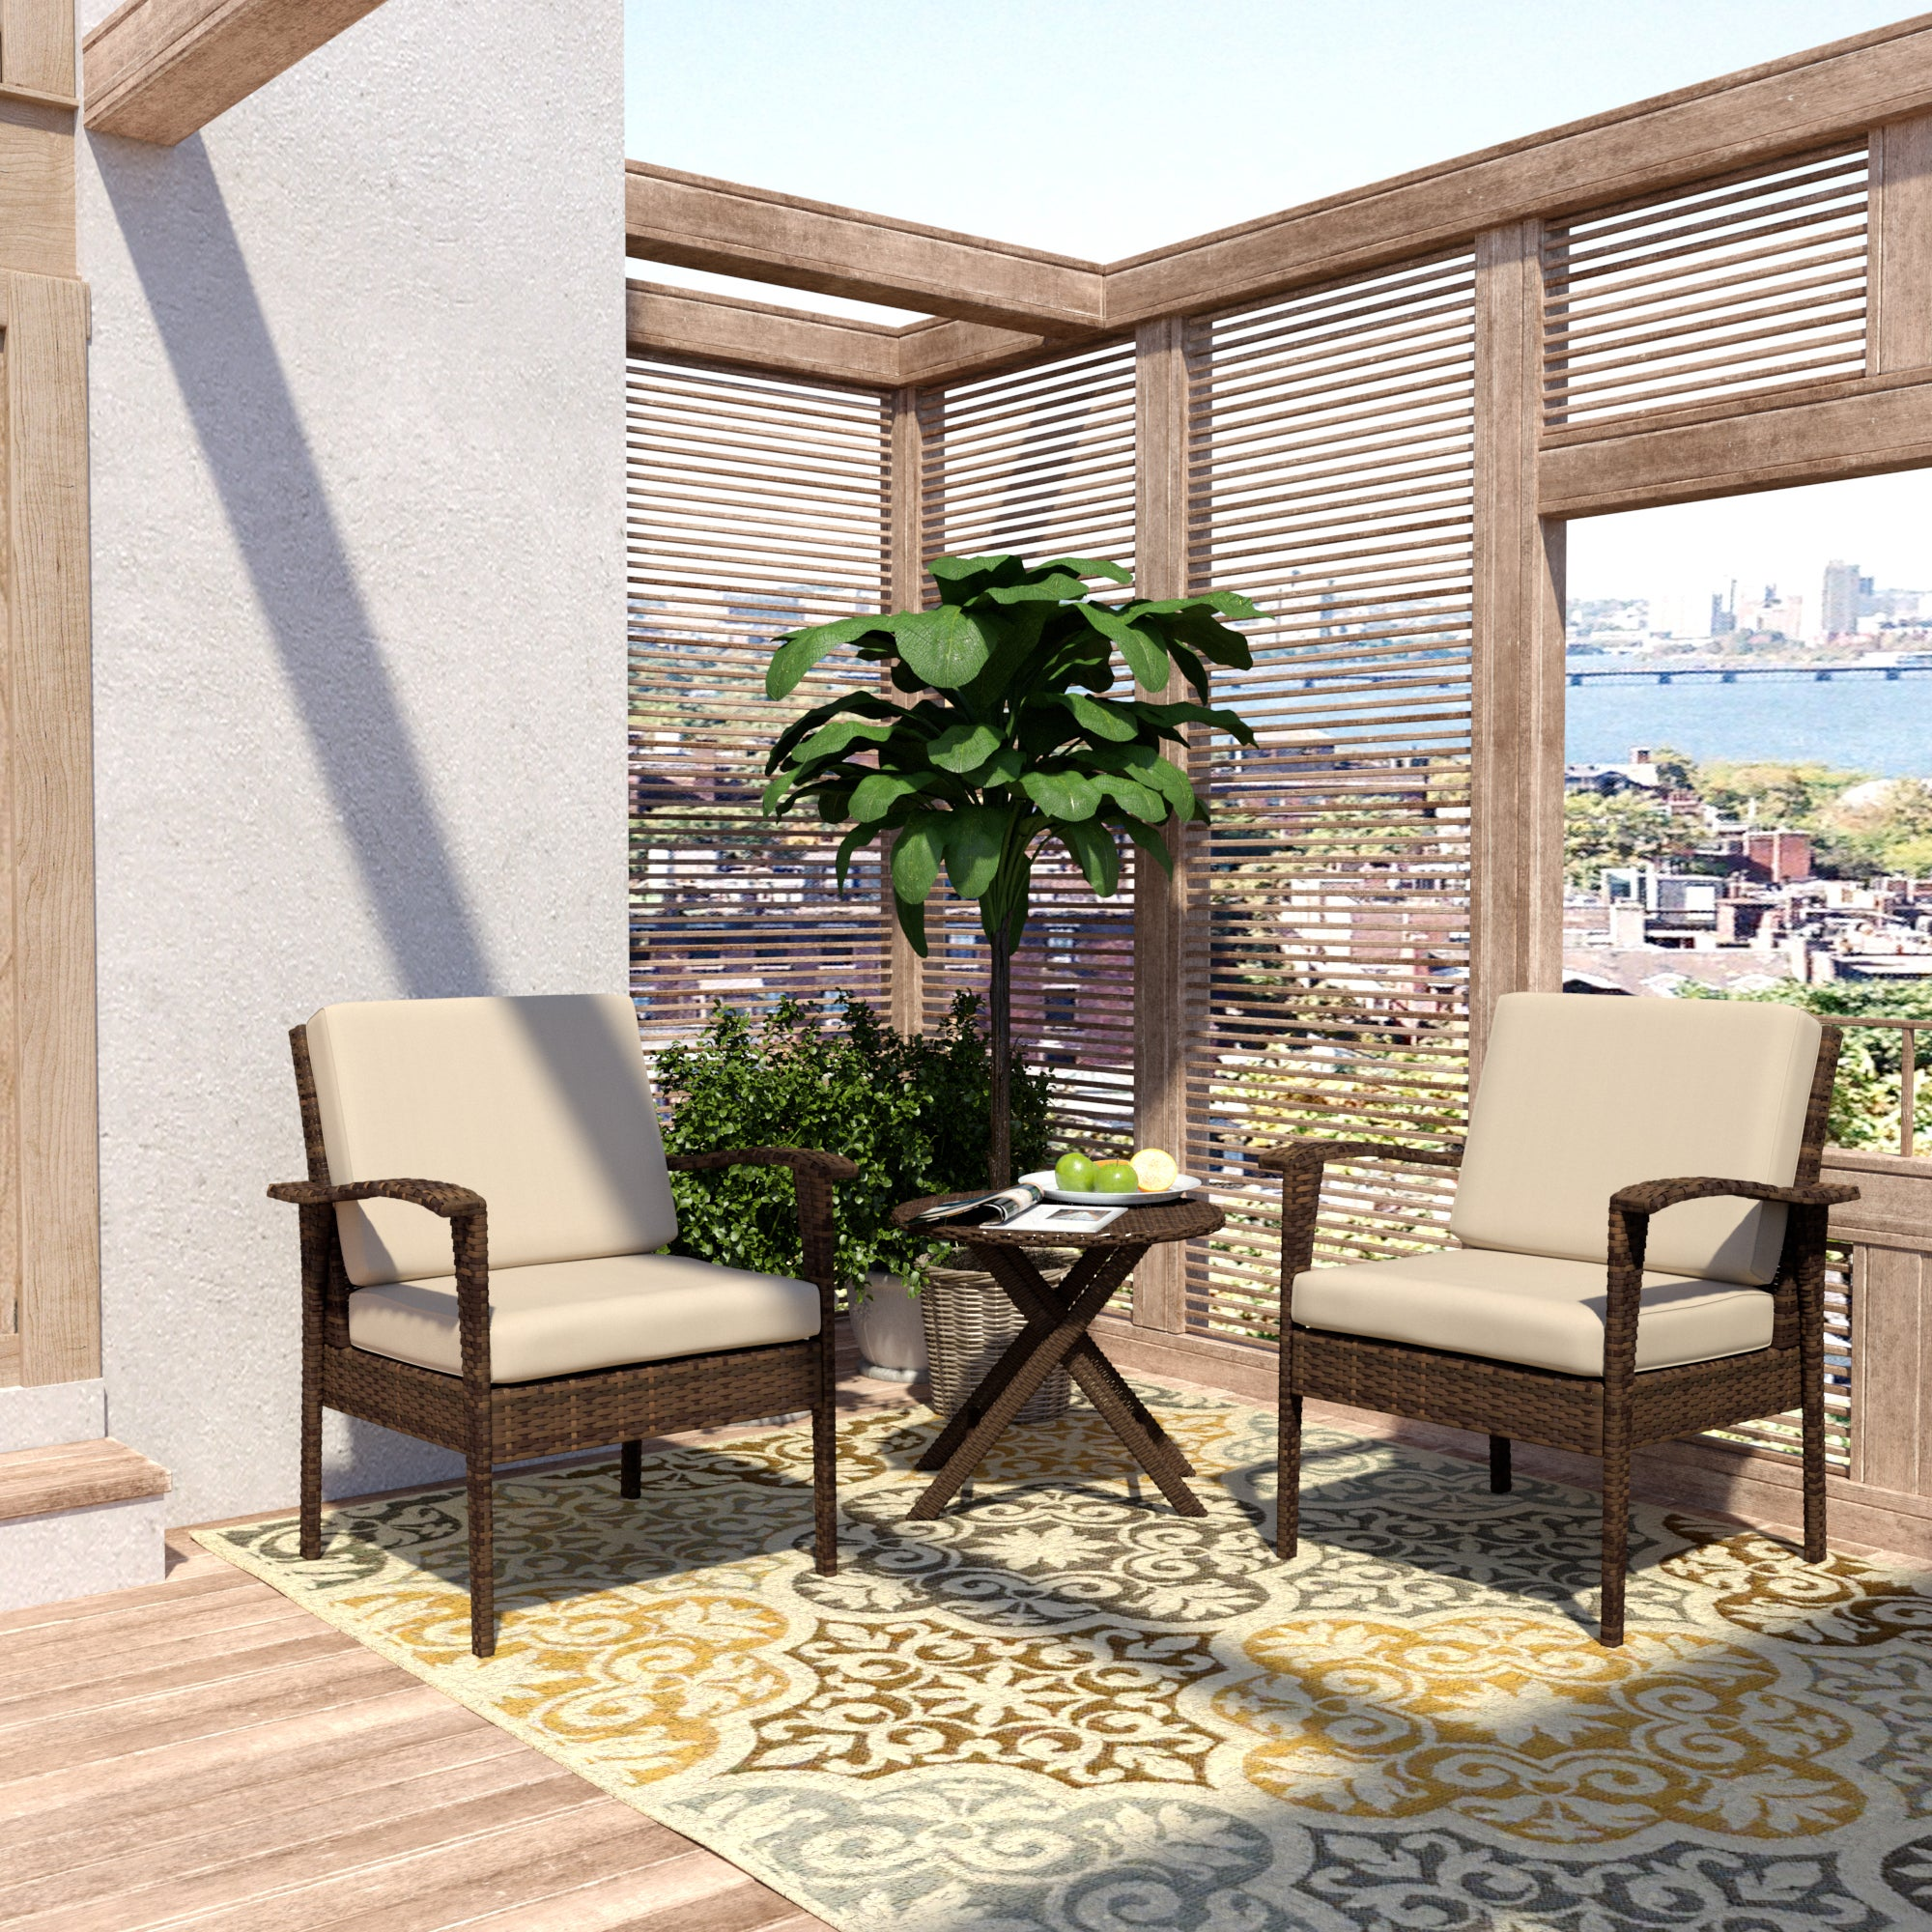 Magnificent Handy Living Aruba 3 Piece Brown Woven Resin Rattan Indoor Outdoor Chairs And Table Set Andrewgaddart Wooden Chair Designs For Living Room Andrewgaddartcom